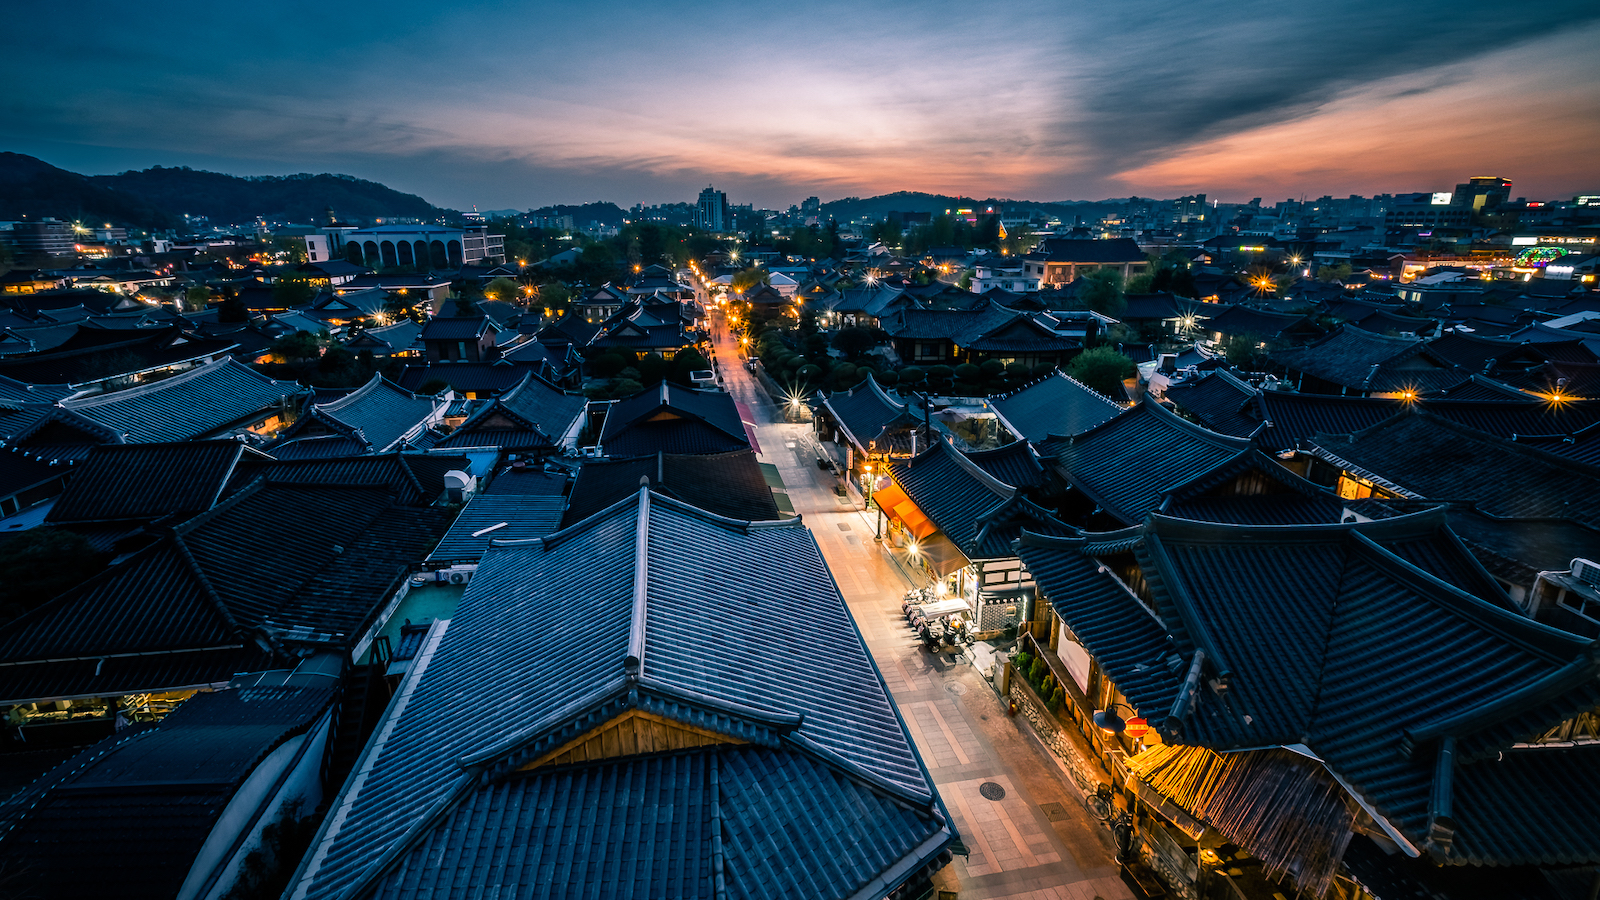 Sunset in Jeonju - South Korea